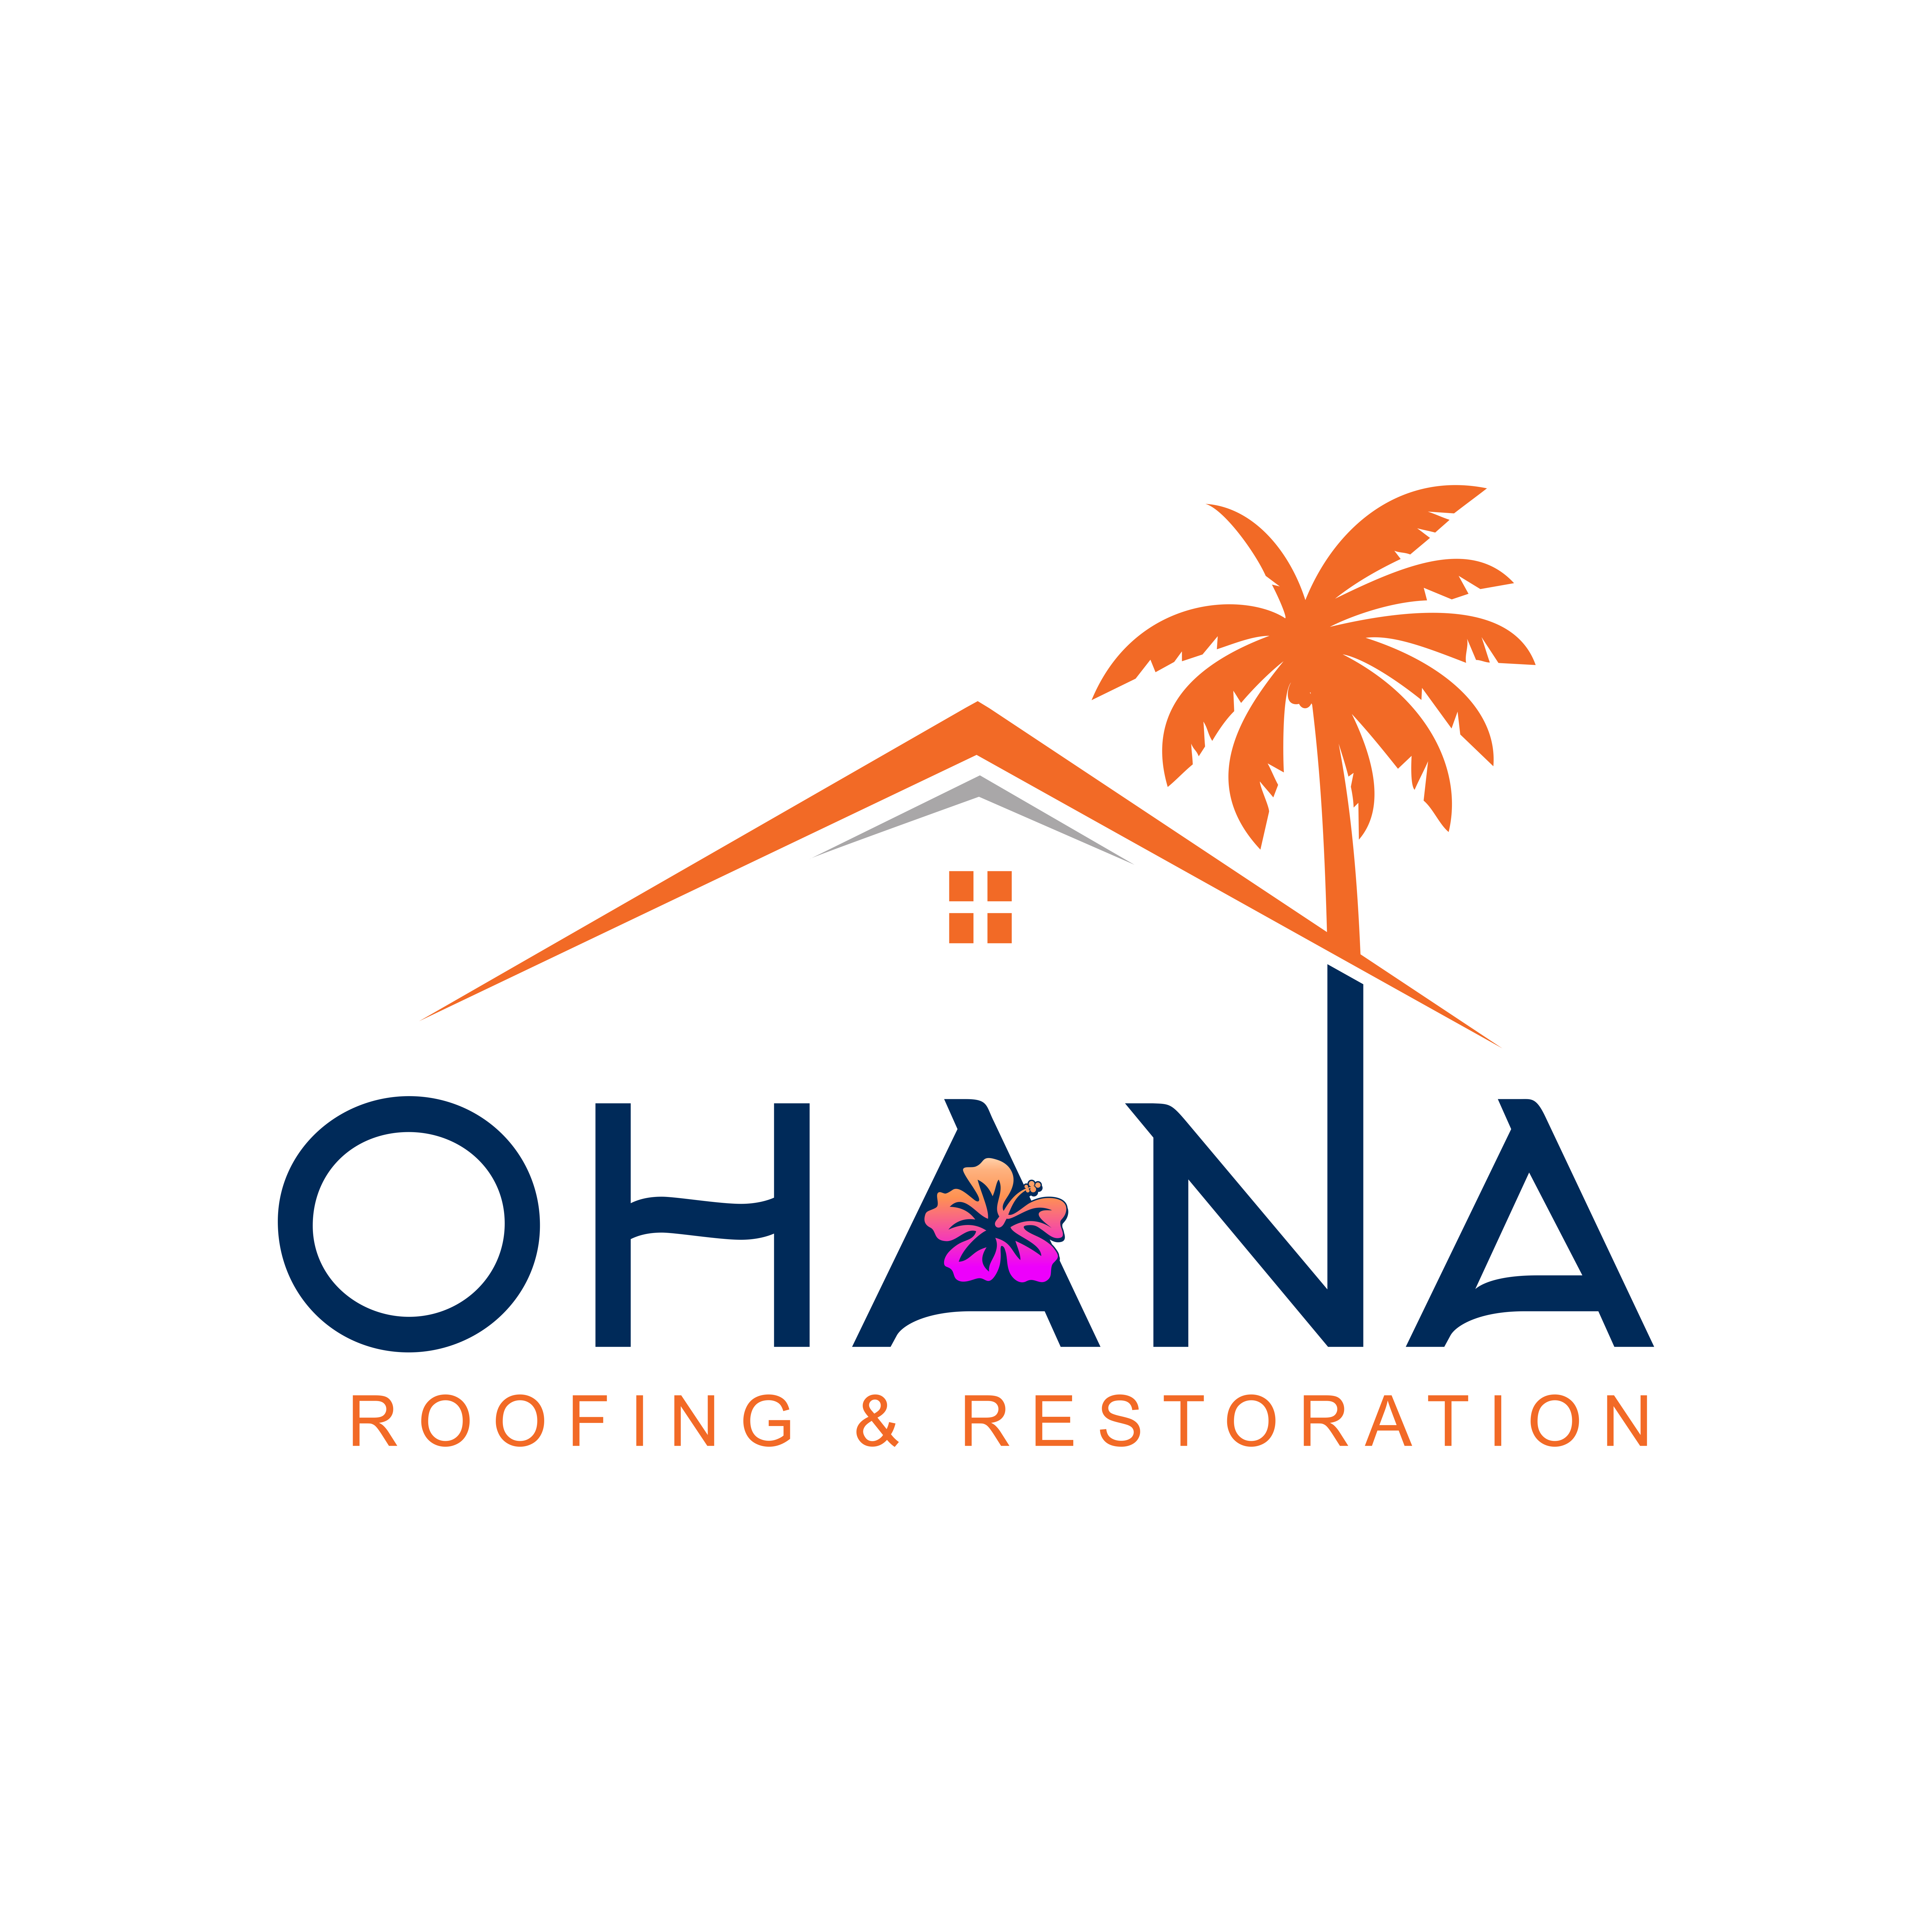 ISO of a logo for a roofing company with a Hawaiian name.